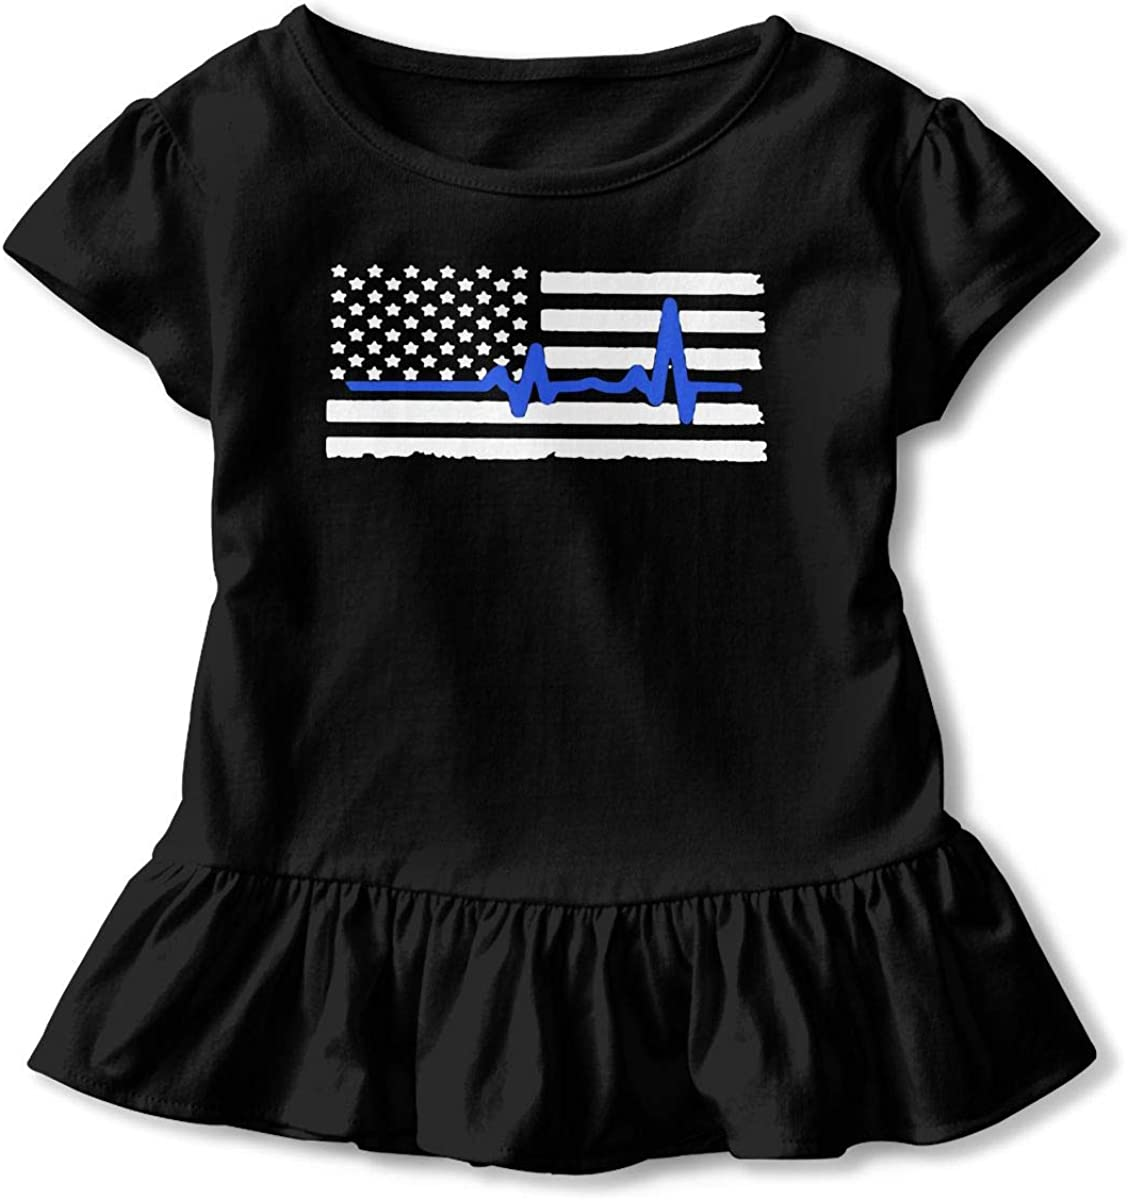 Love Thin Blue Line USA Flag 2-6 Years Old Boys /& Girls Short-Sleeved T Shirts